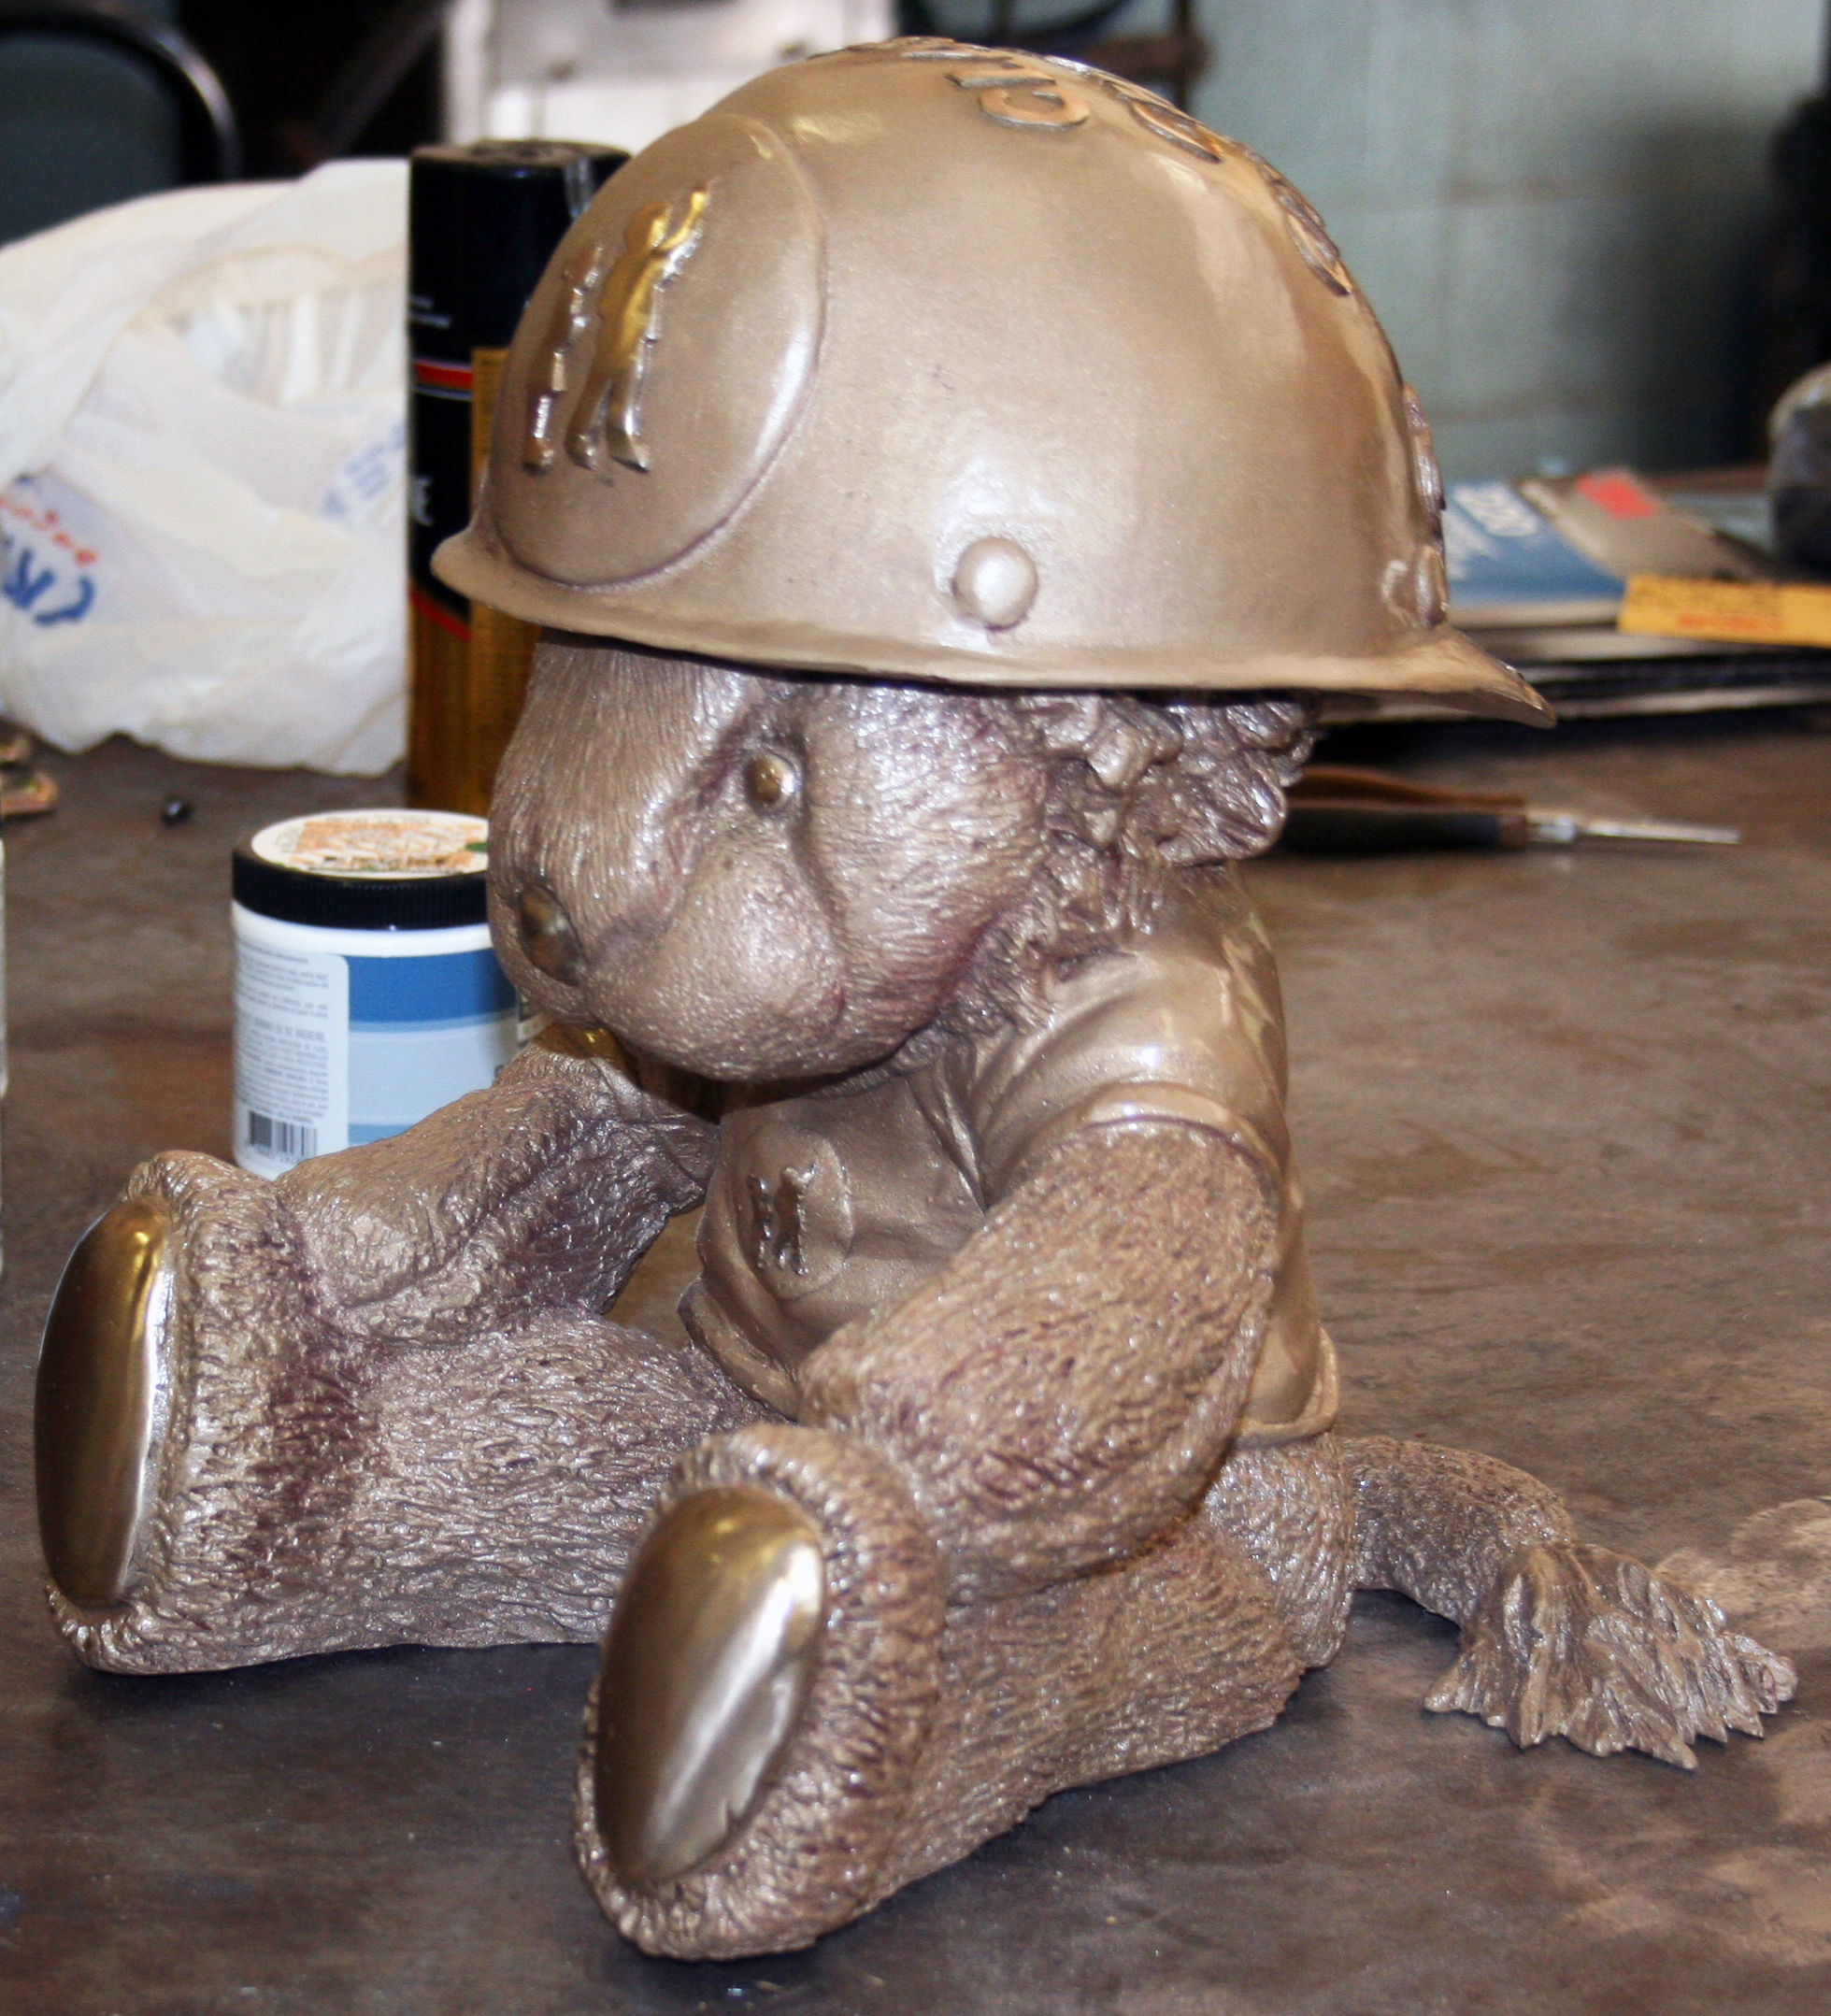 Craig Wedderspoon's Simon the Lion is almost ready for the Nucor Children's charity auction.